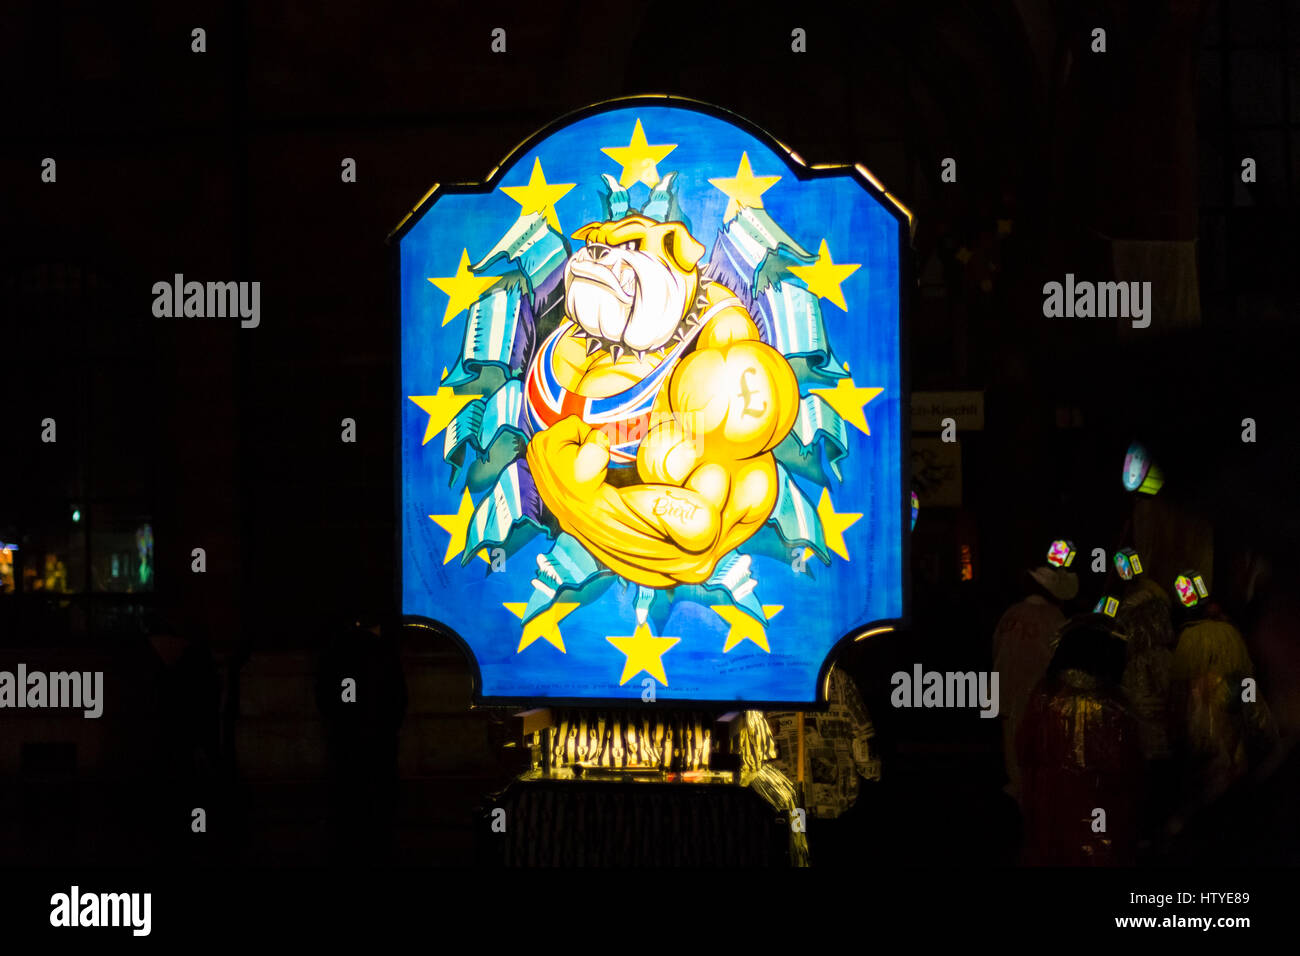 Basel carnival 2017. Colorful illuminated single main lantern with the british brexit topic on monday morning in - Stock Image